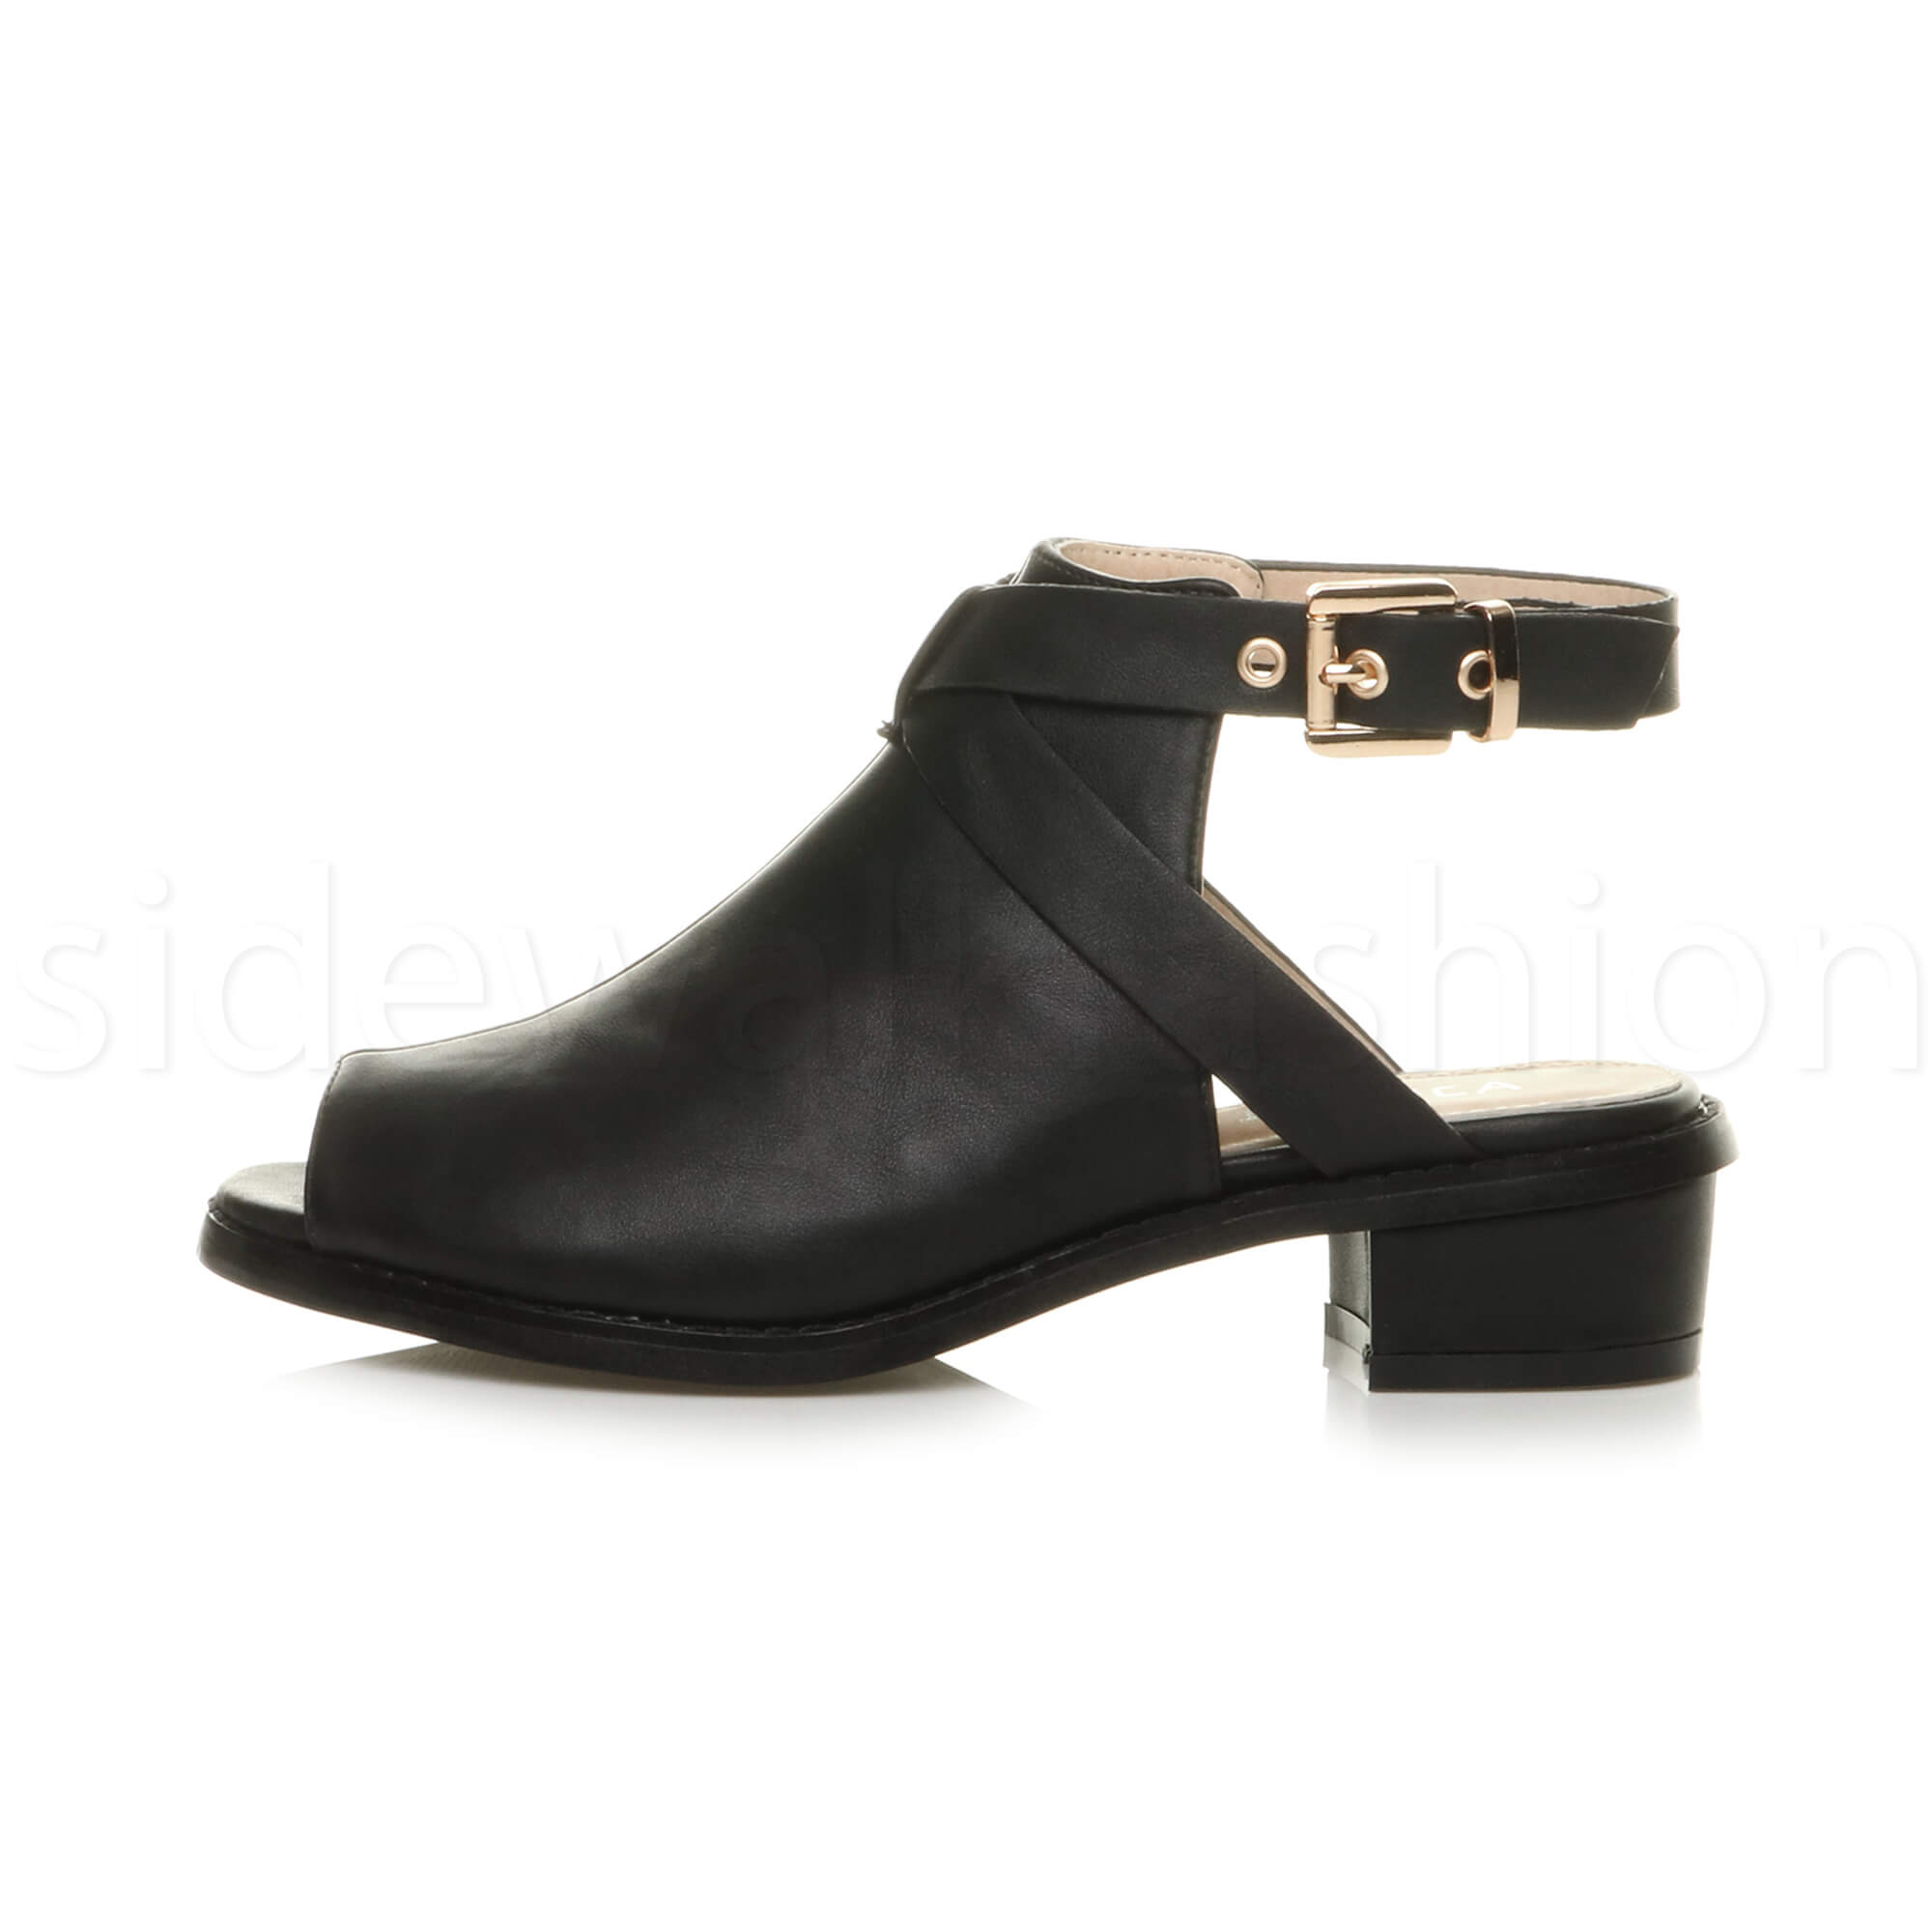 Womens-ladies-low-mid-heel-strap-open-backless-peep-toe-boots-sandals-shoes-size thumbnail 3